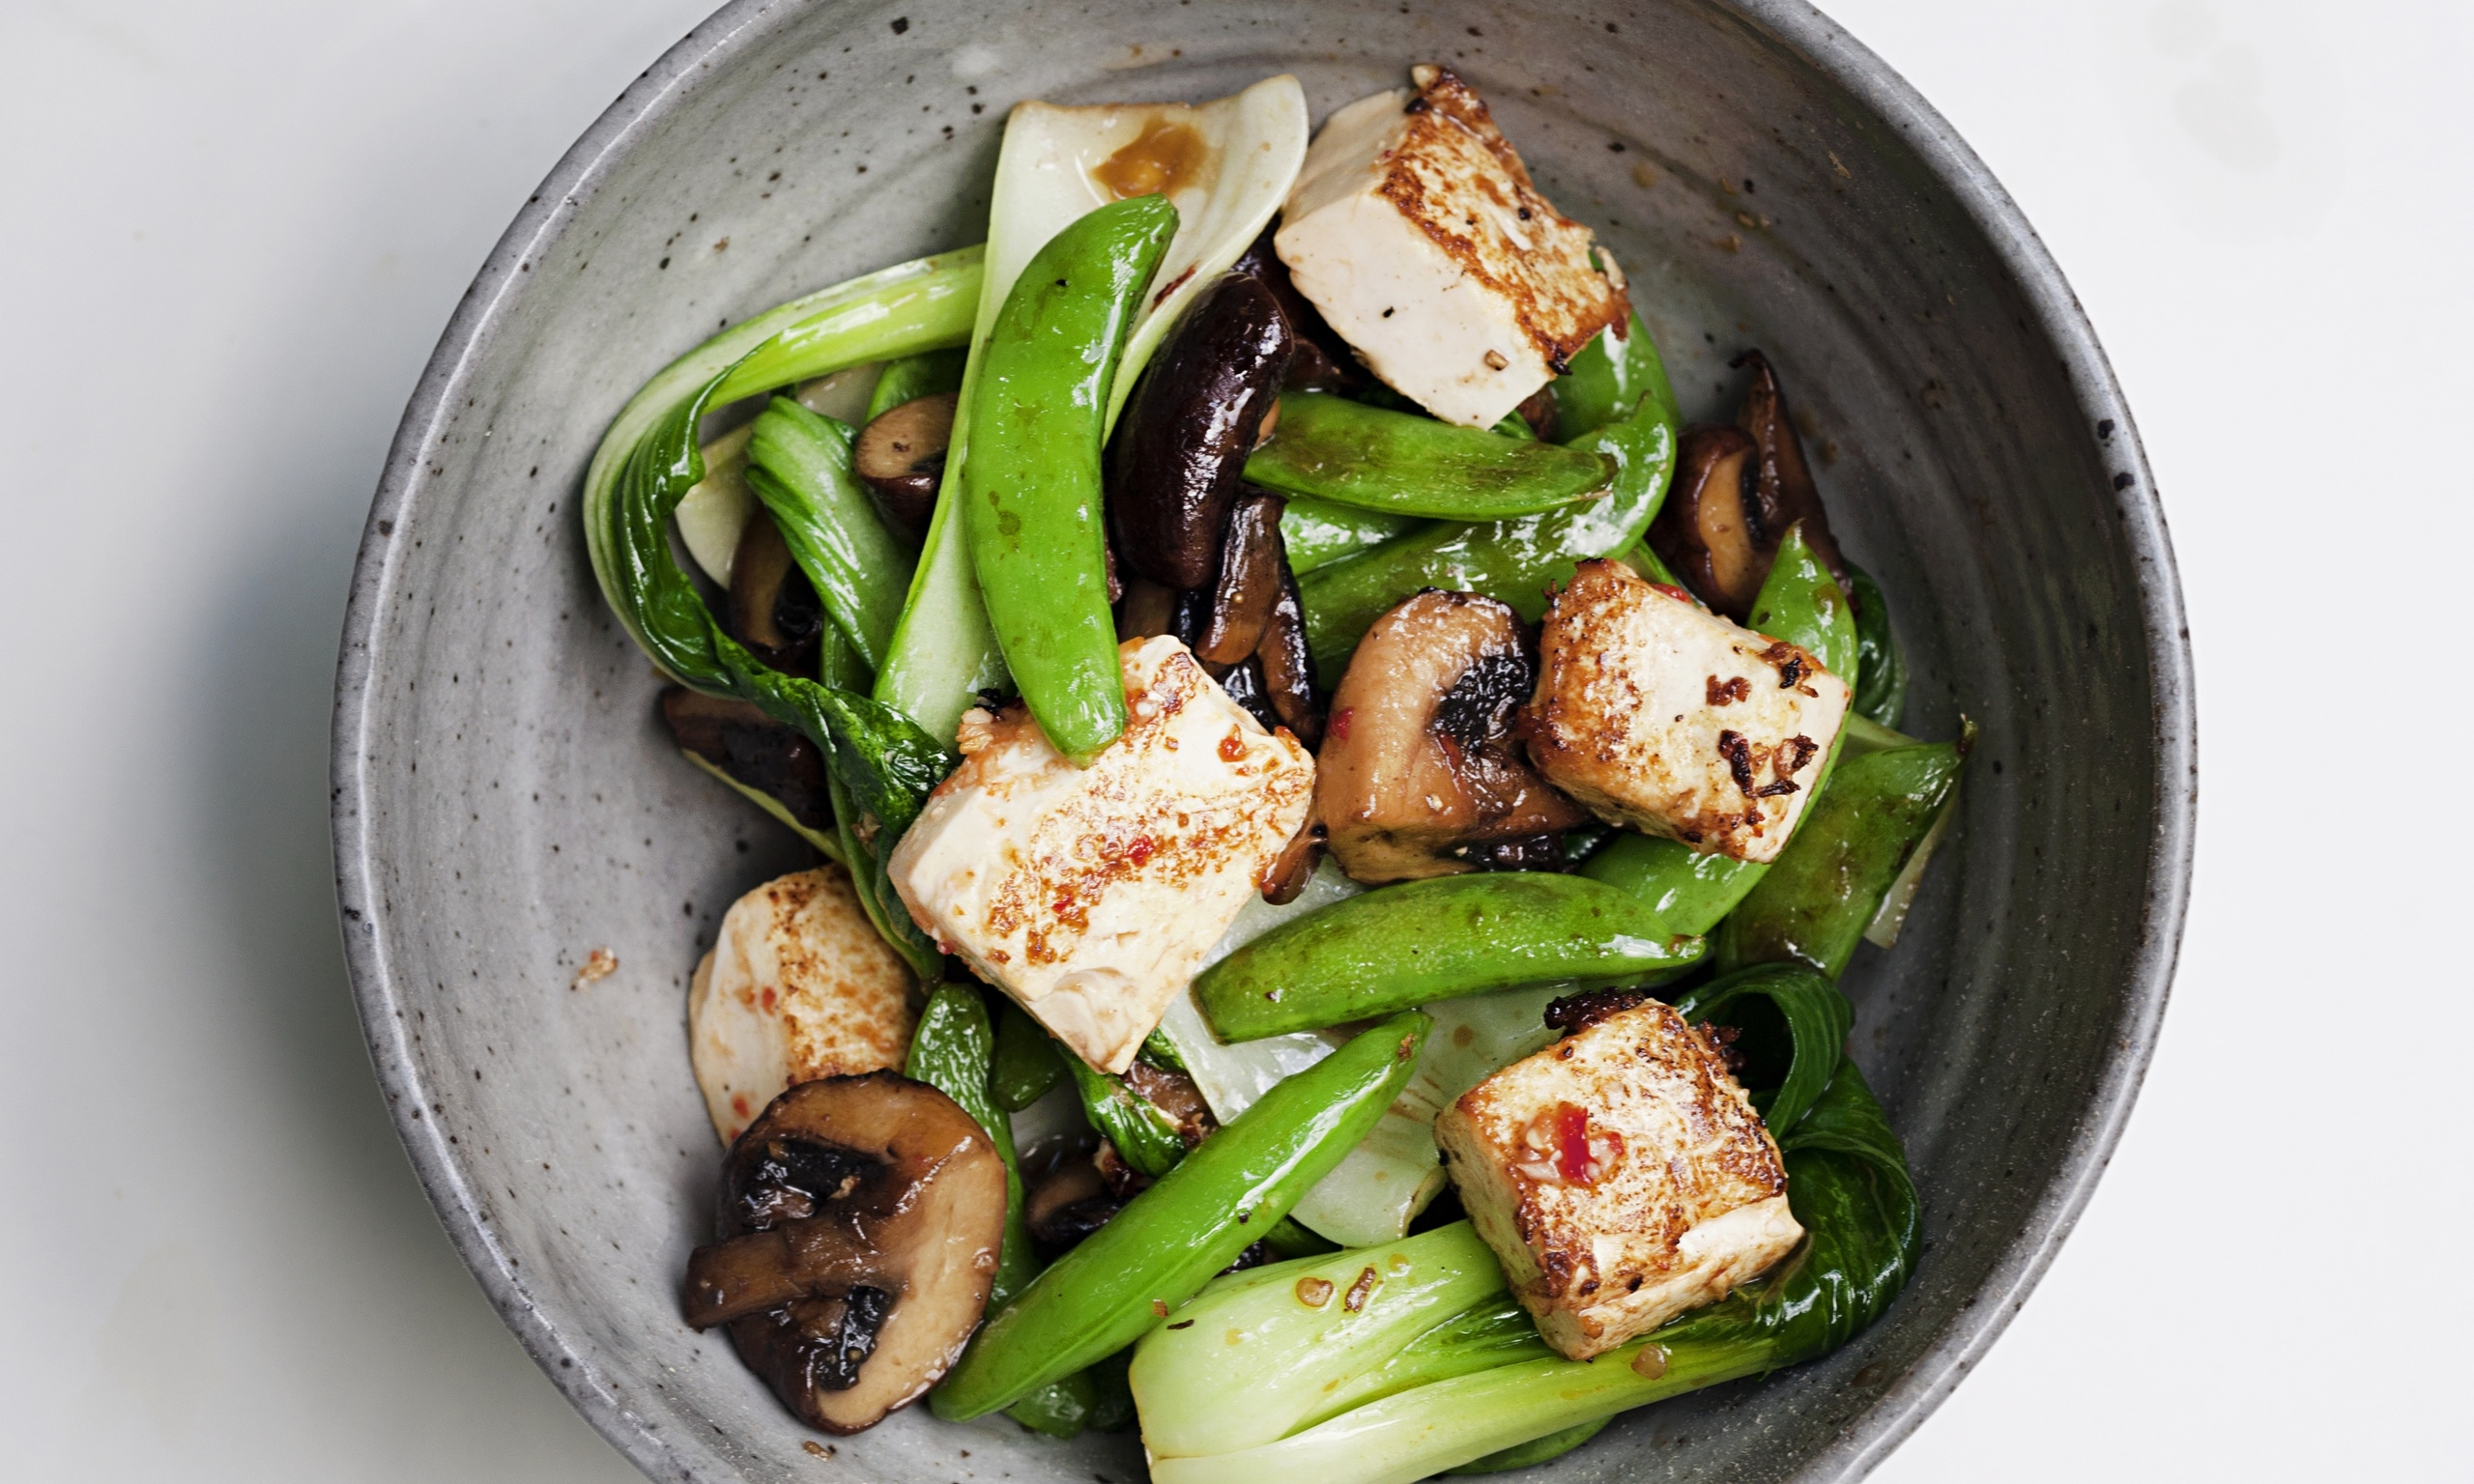 Nigel Slater's marinated tofu stir-fry recipe | Life and style | The ...